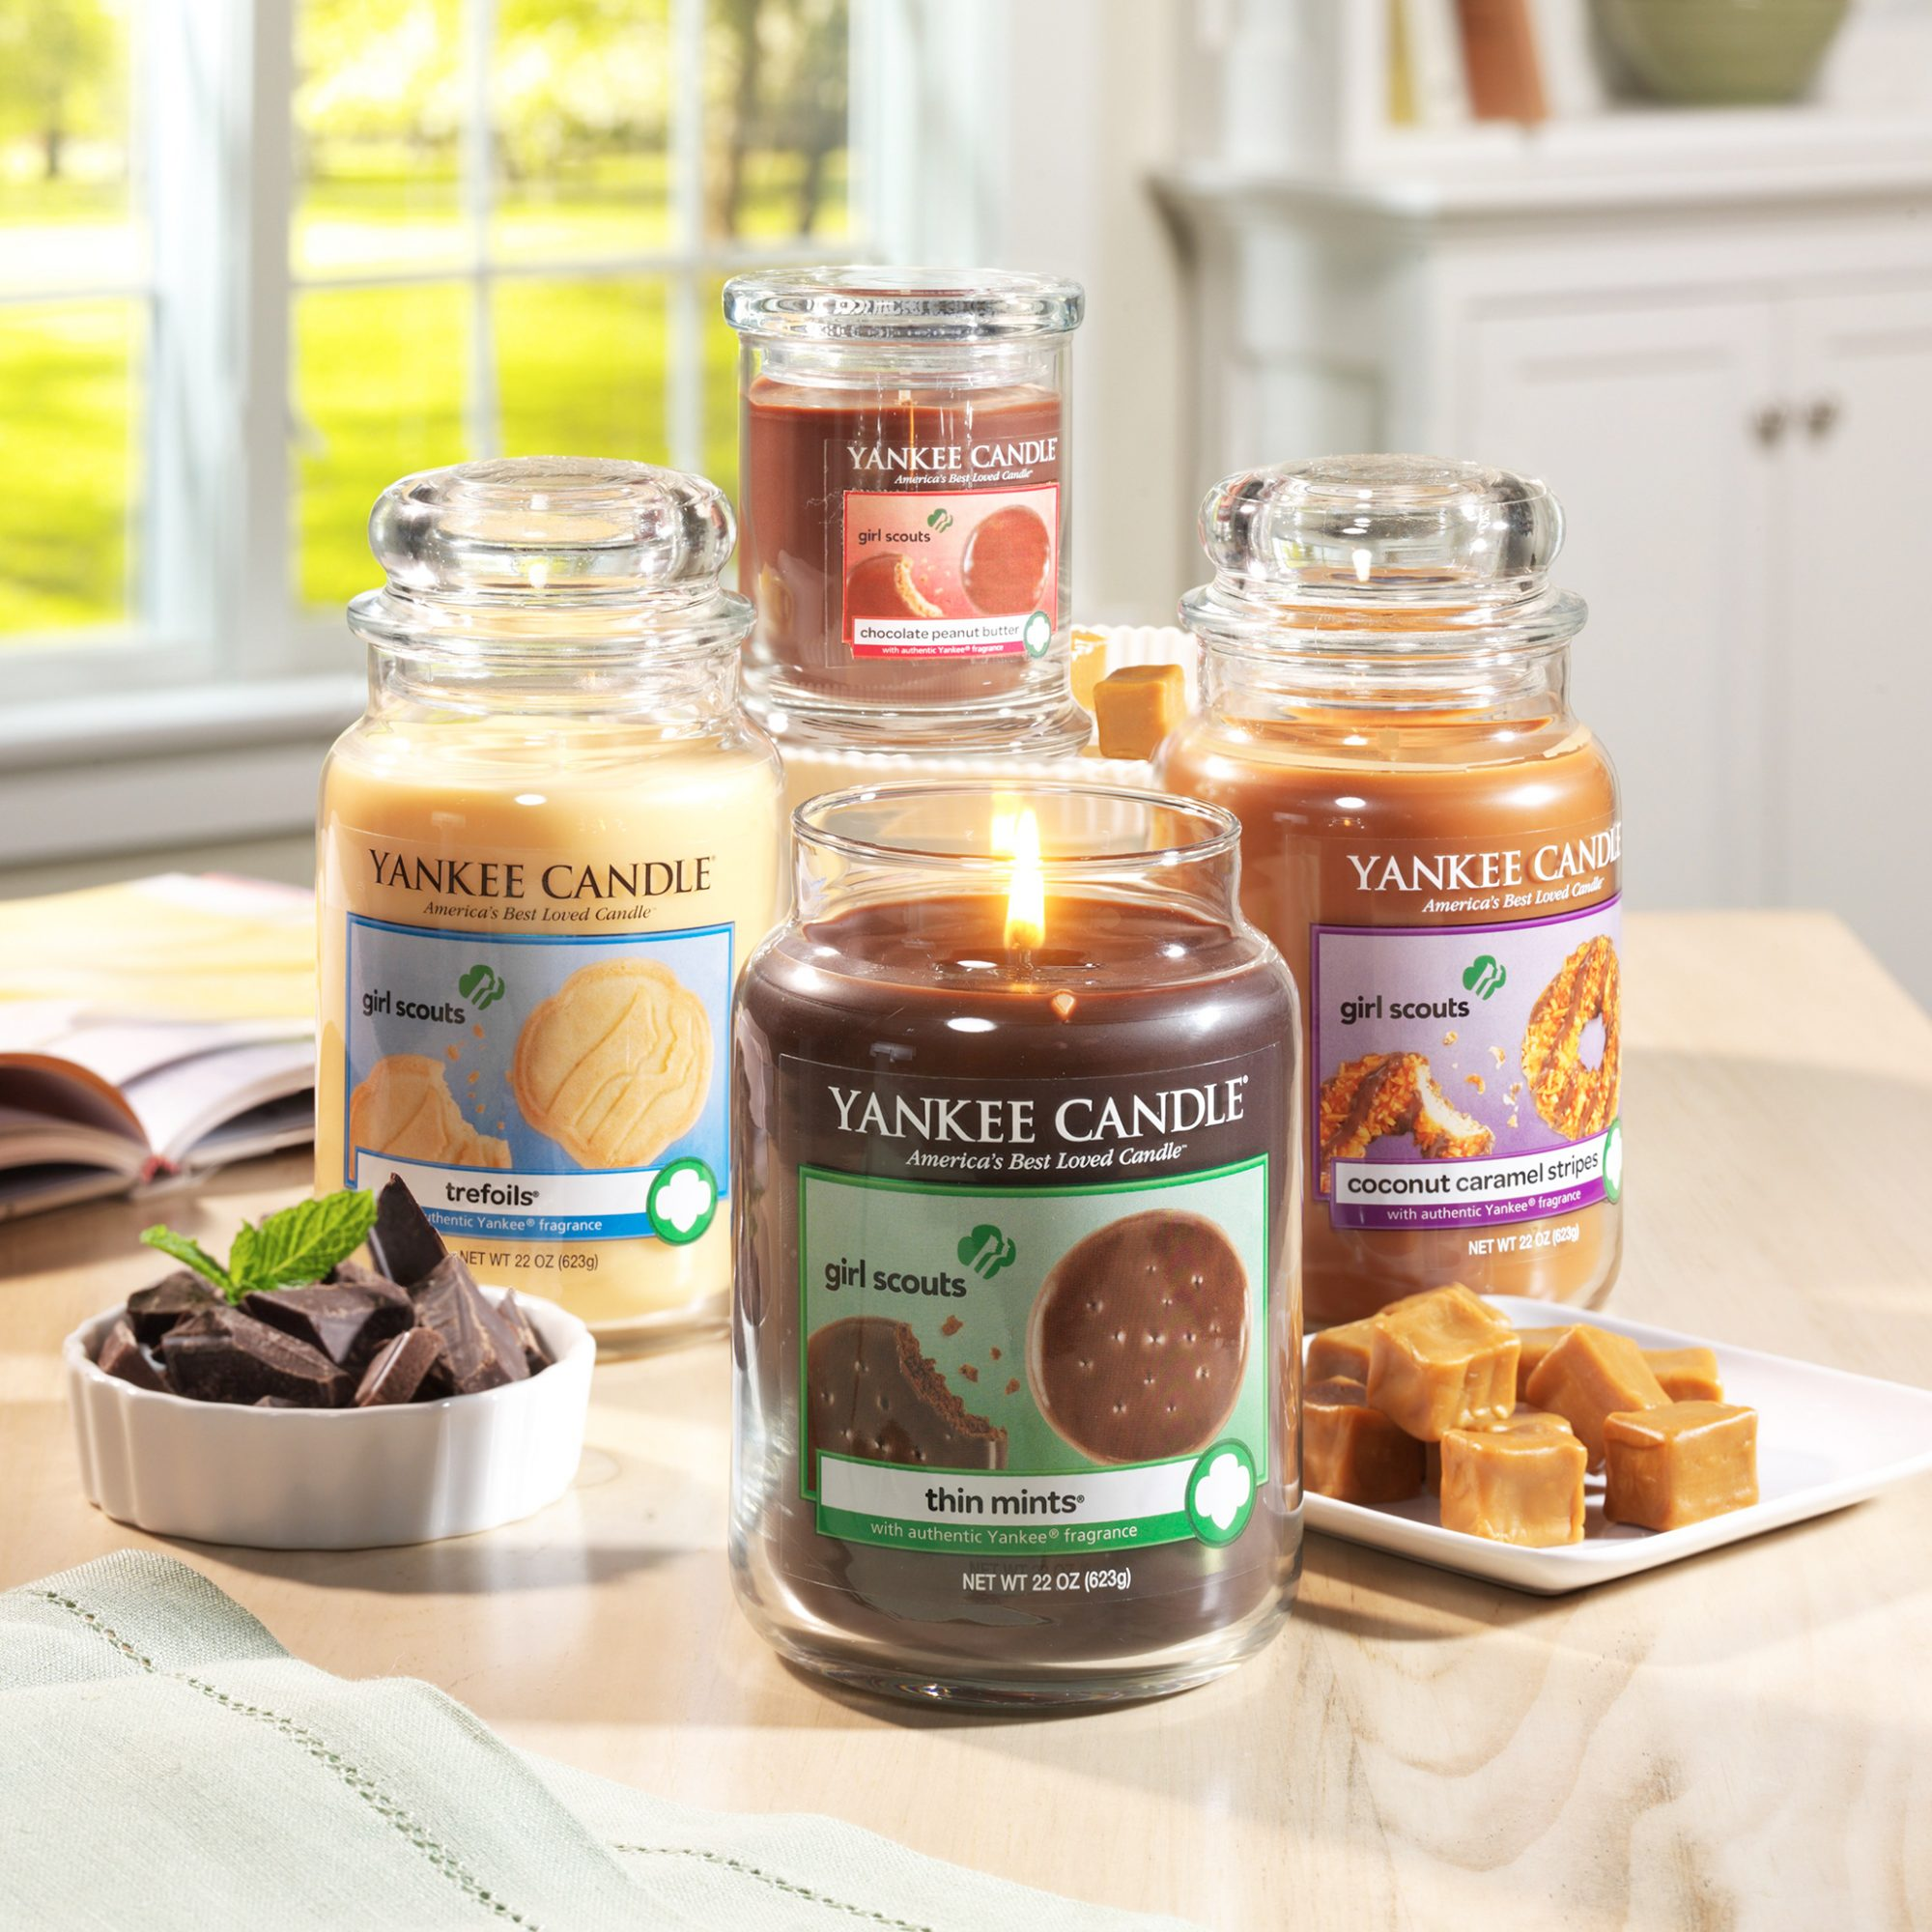 FWX YANKEE CANDLE GIRL SCOUT COOKIES